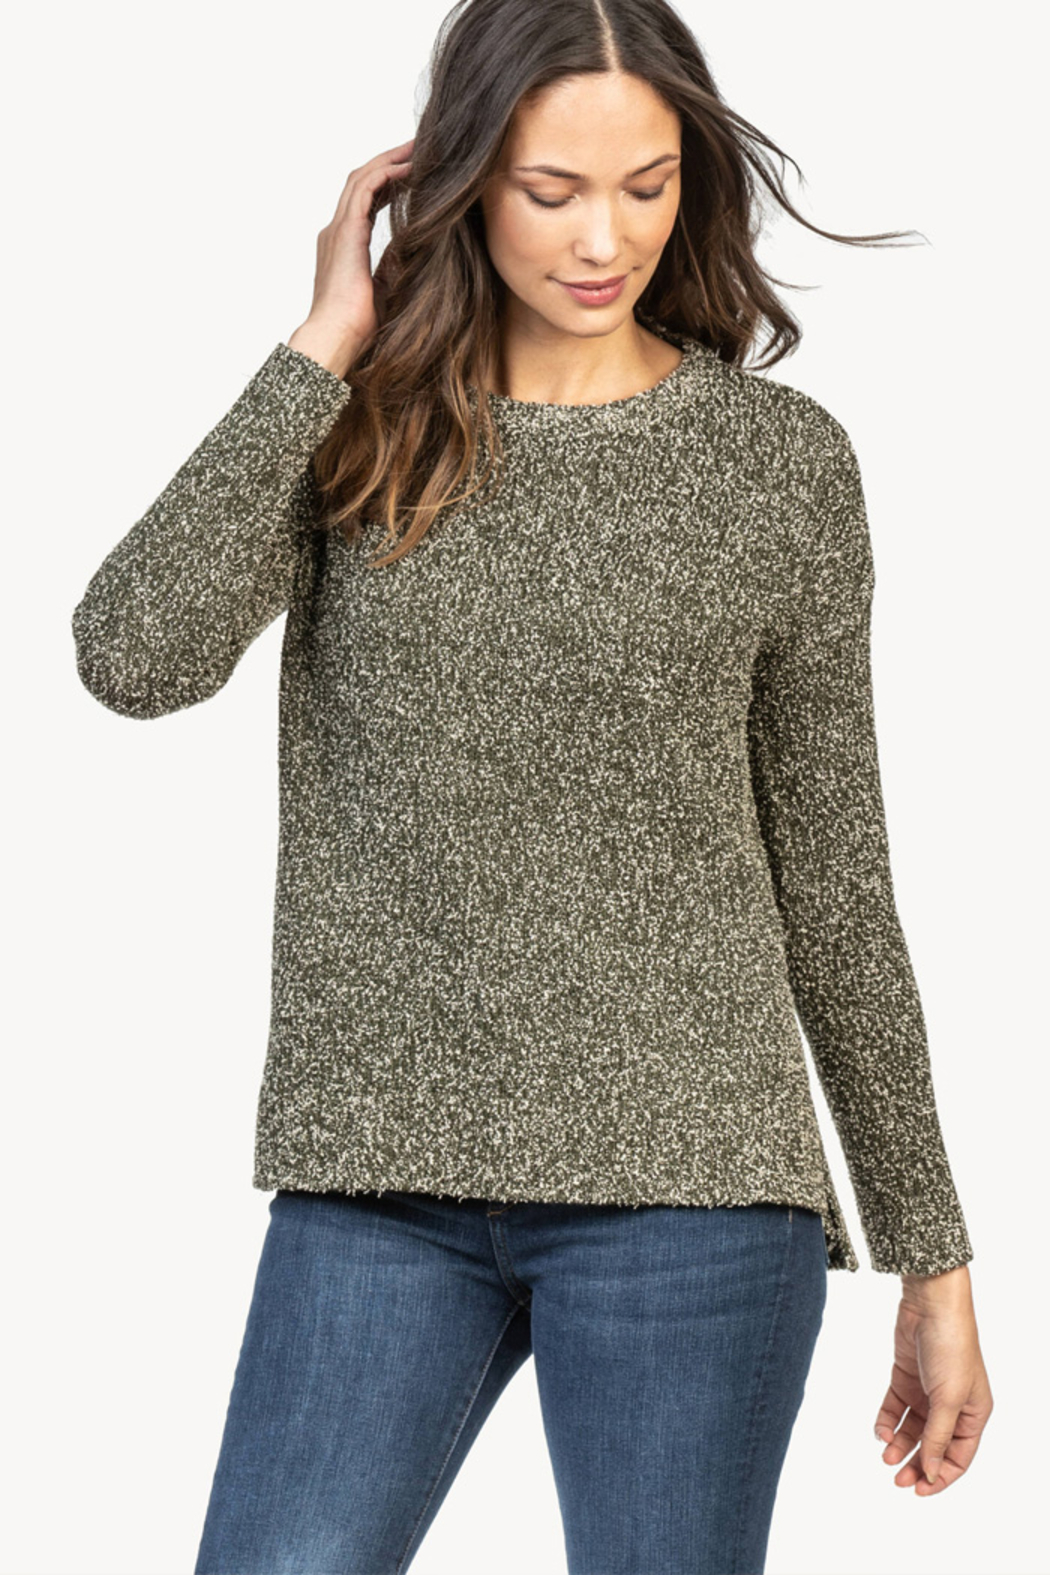 Lilla P Flecked Cotton Blend Pullover Sweater - Main Image